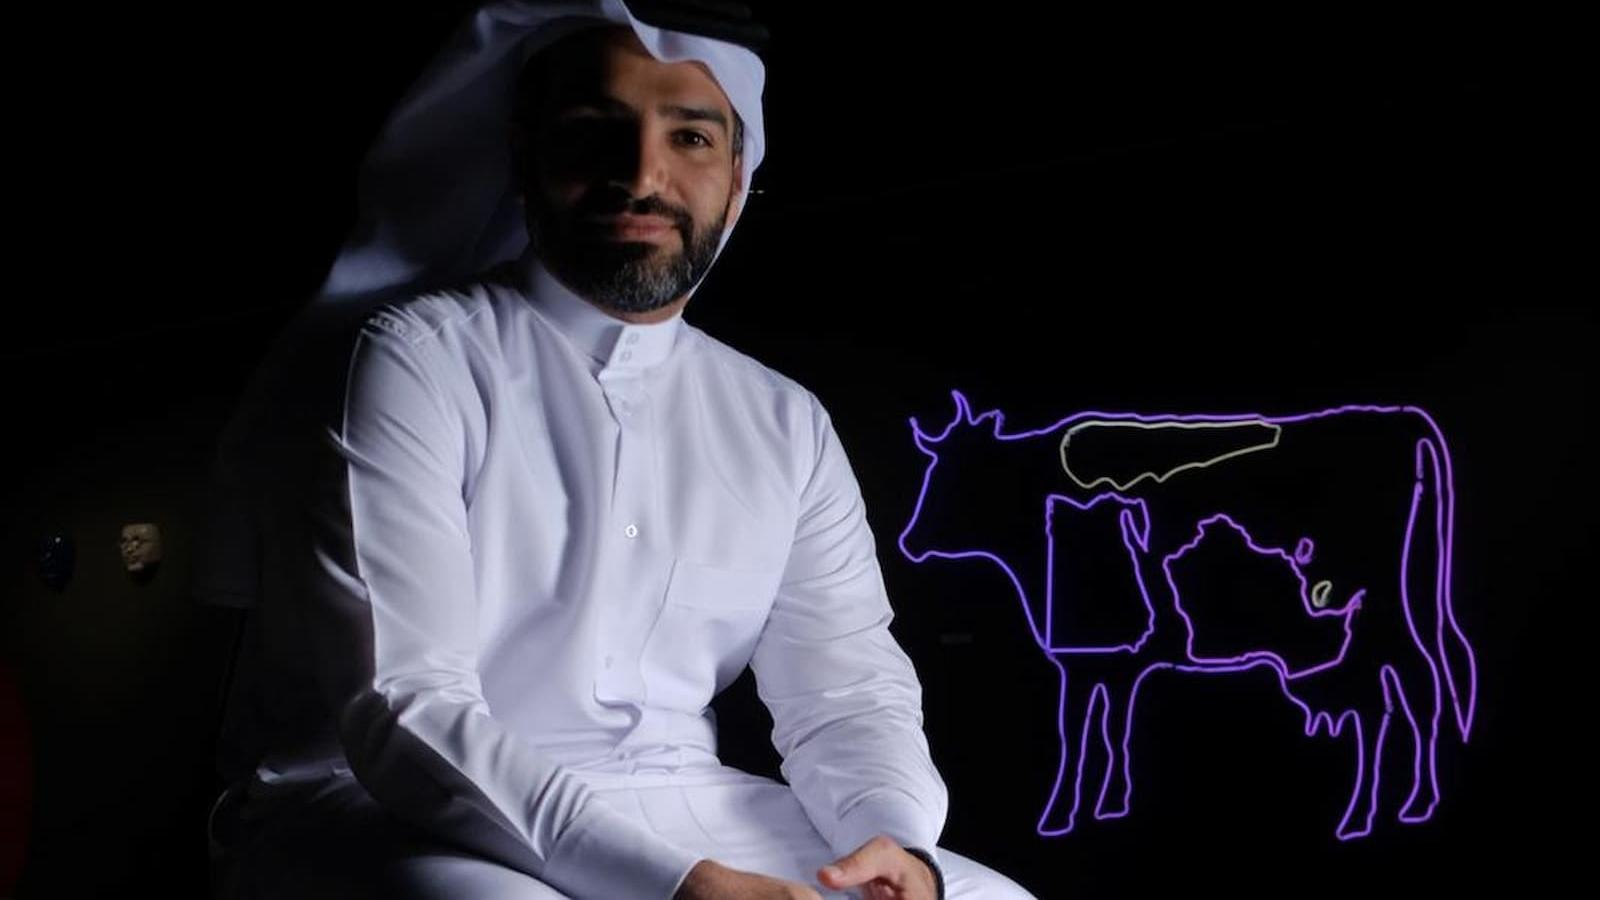 QL Exclusive: An interview with the artist, Abdulaziz Yousef Ahmed